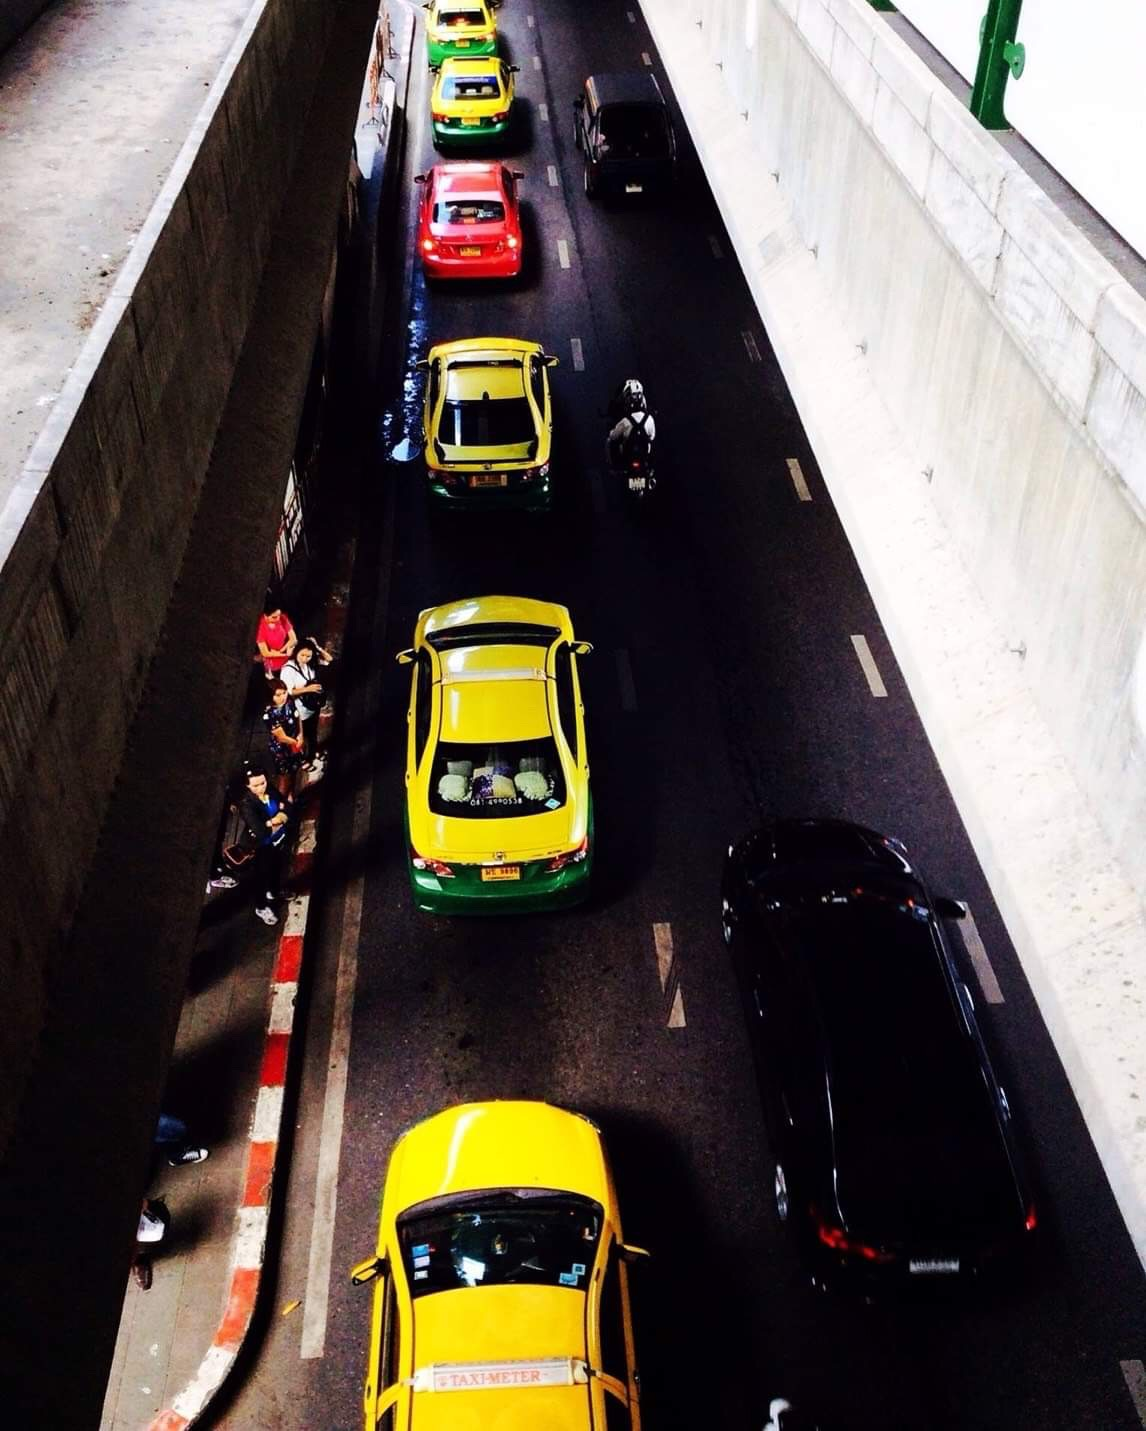 TAXI CARS LINE UP , VIEW FROM ABOVE 🚕🚖 ( แท็คซี่เรียงแถว , เมื่อมองจากข้างบน 🚕🚖 )